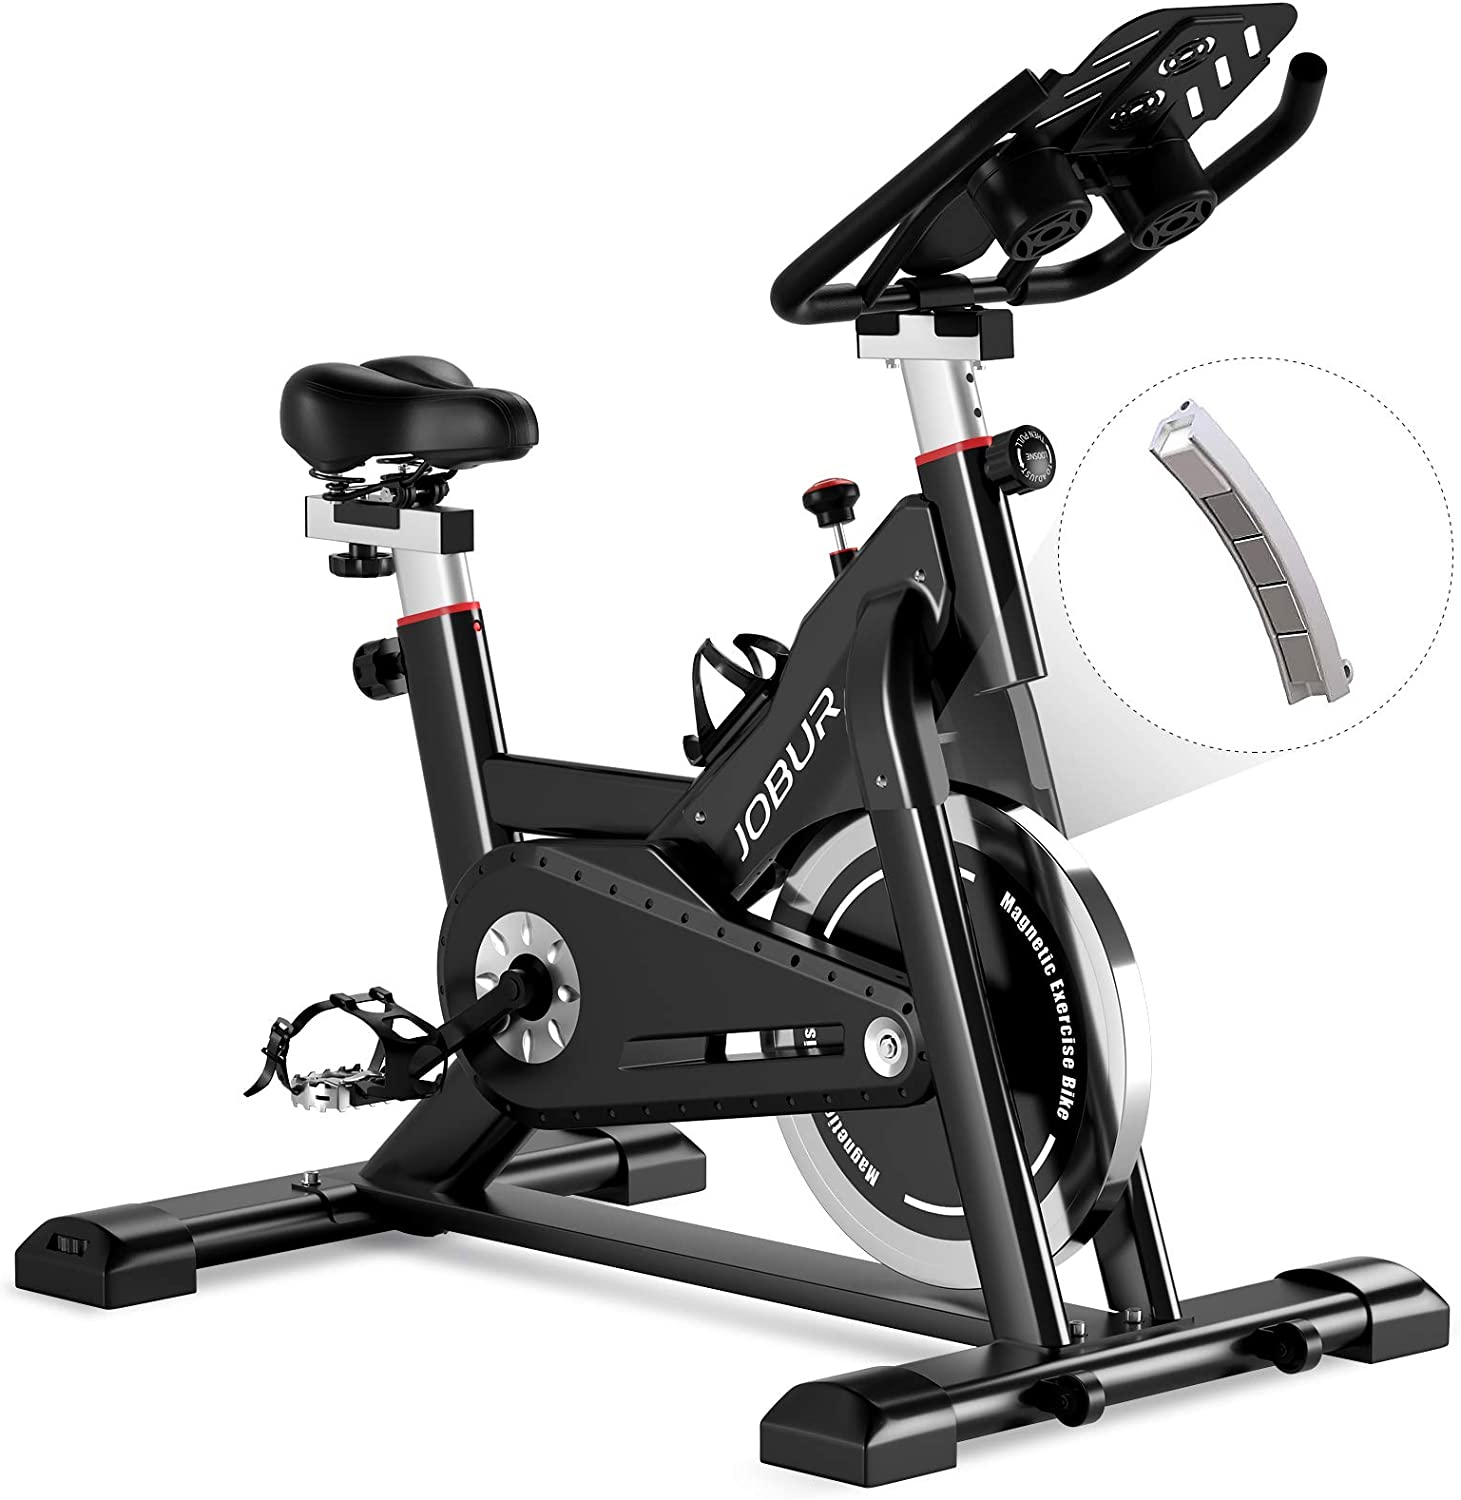 Best Spin Bikes For 300 lbs And Obese People in 2021